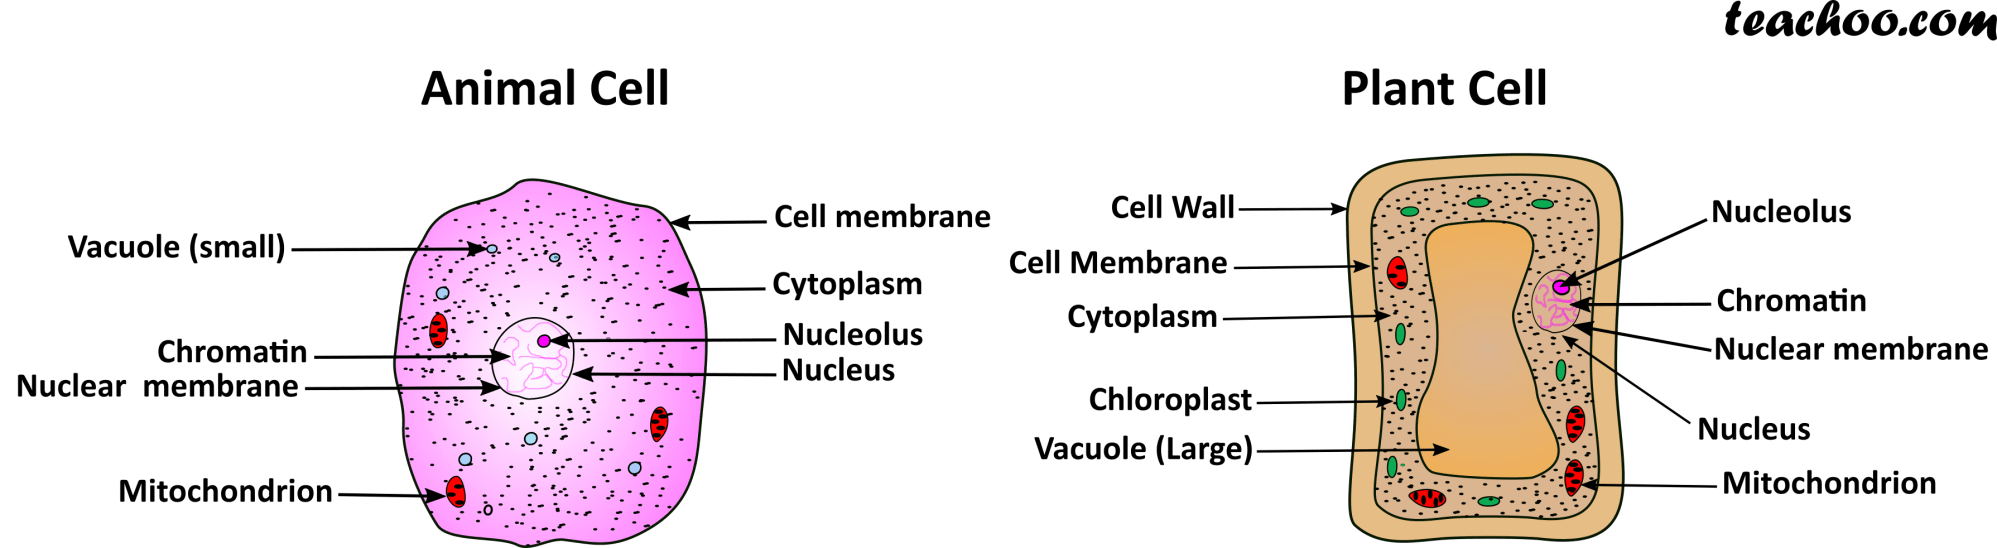 hight resolution of plant and animal cell png